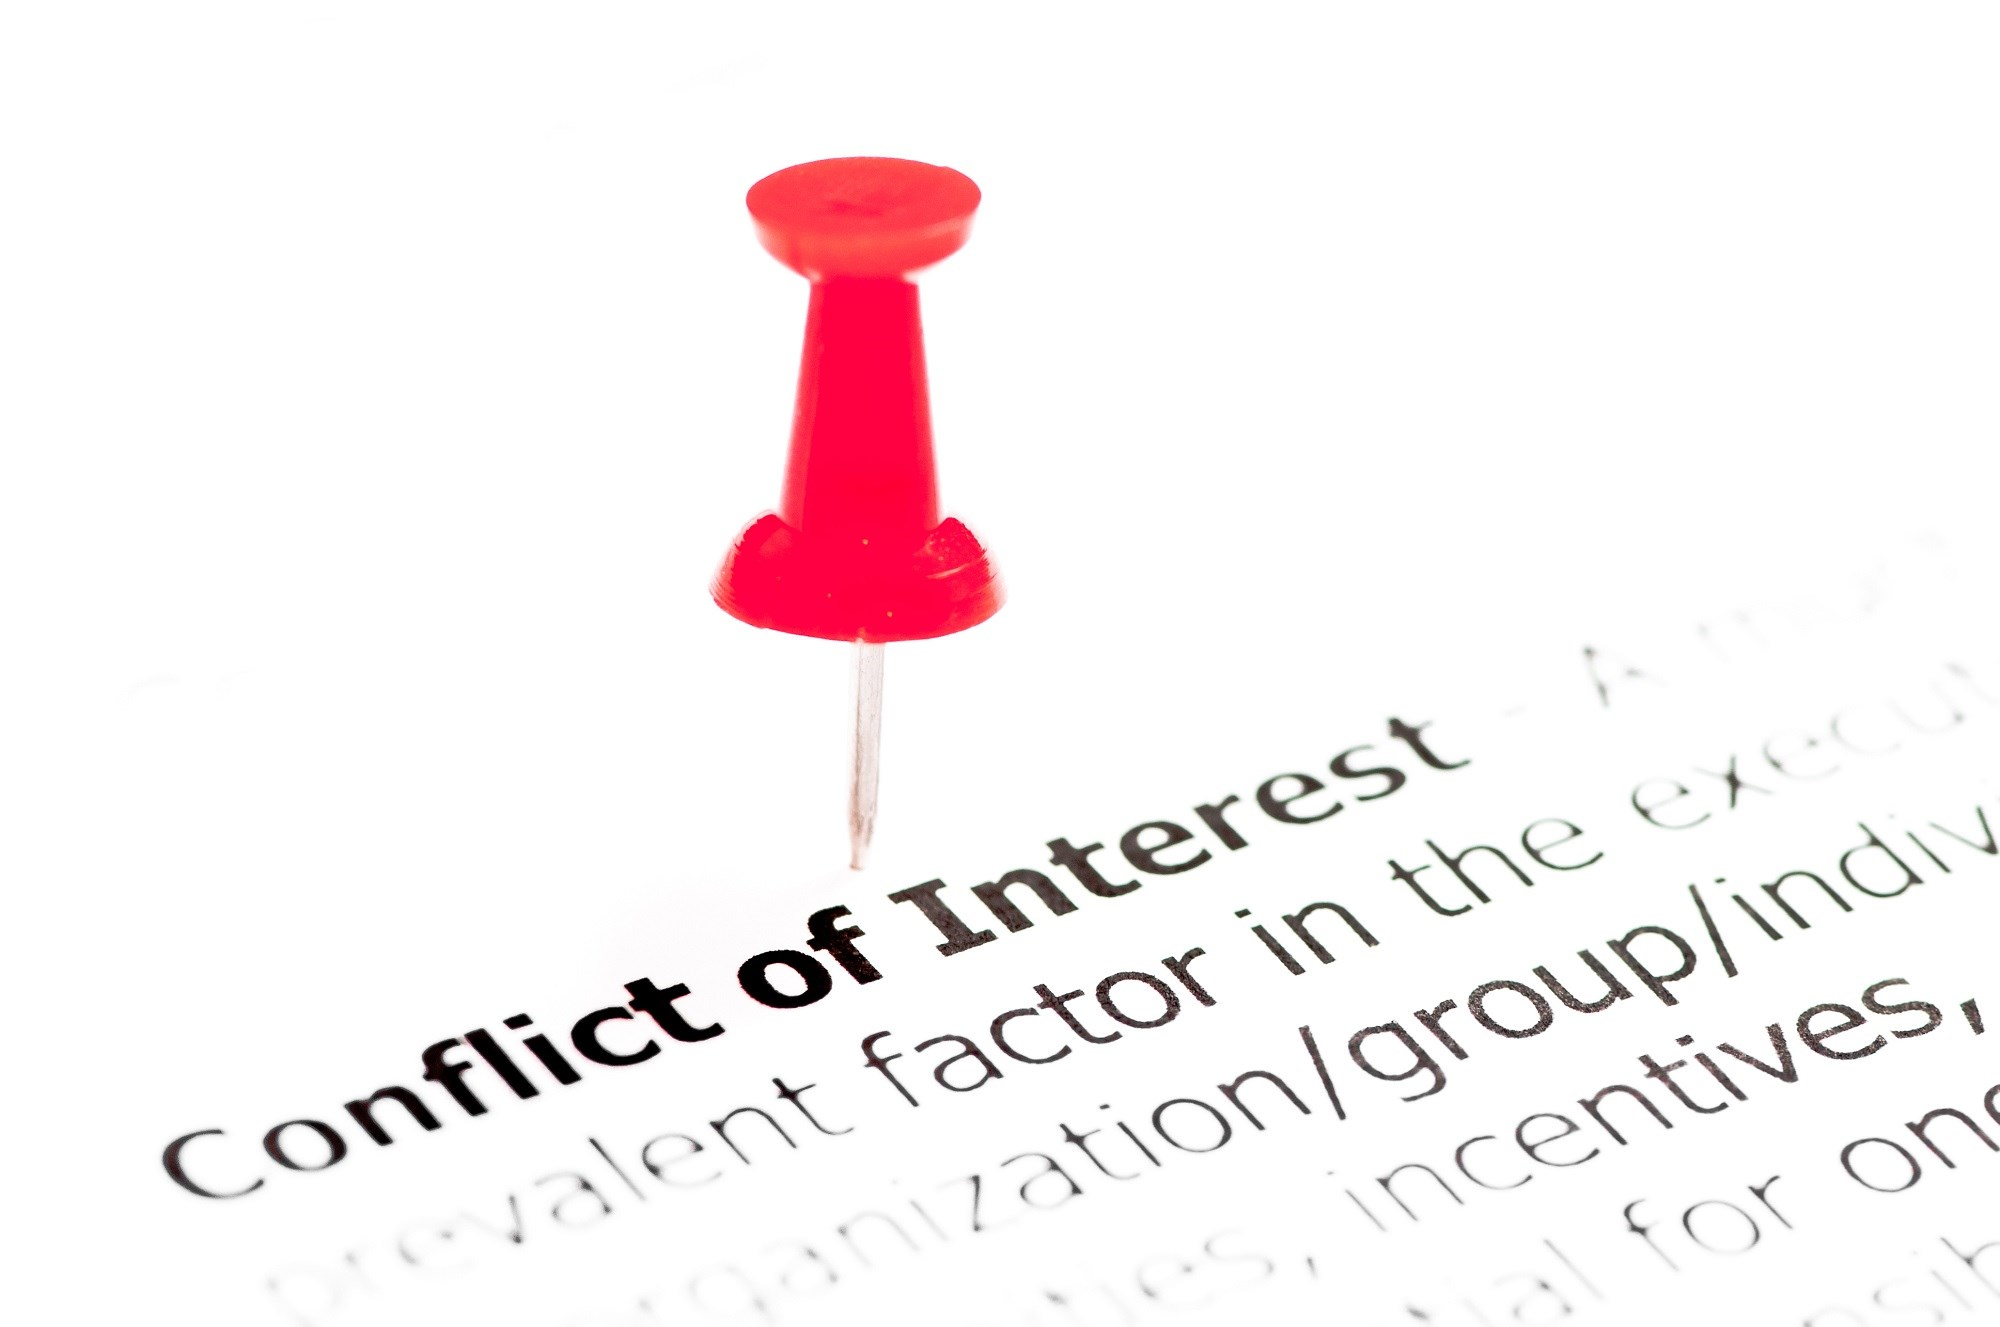 Financial Conflicts of Interest Prevalent Among Clinical Practice Guideline Authors